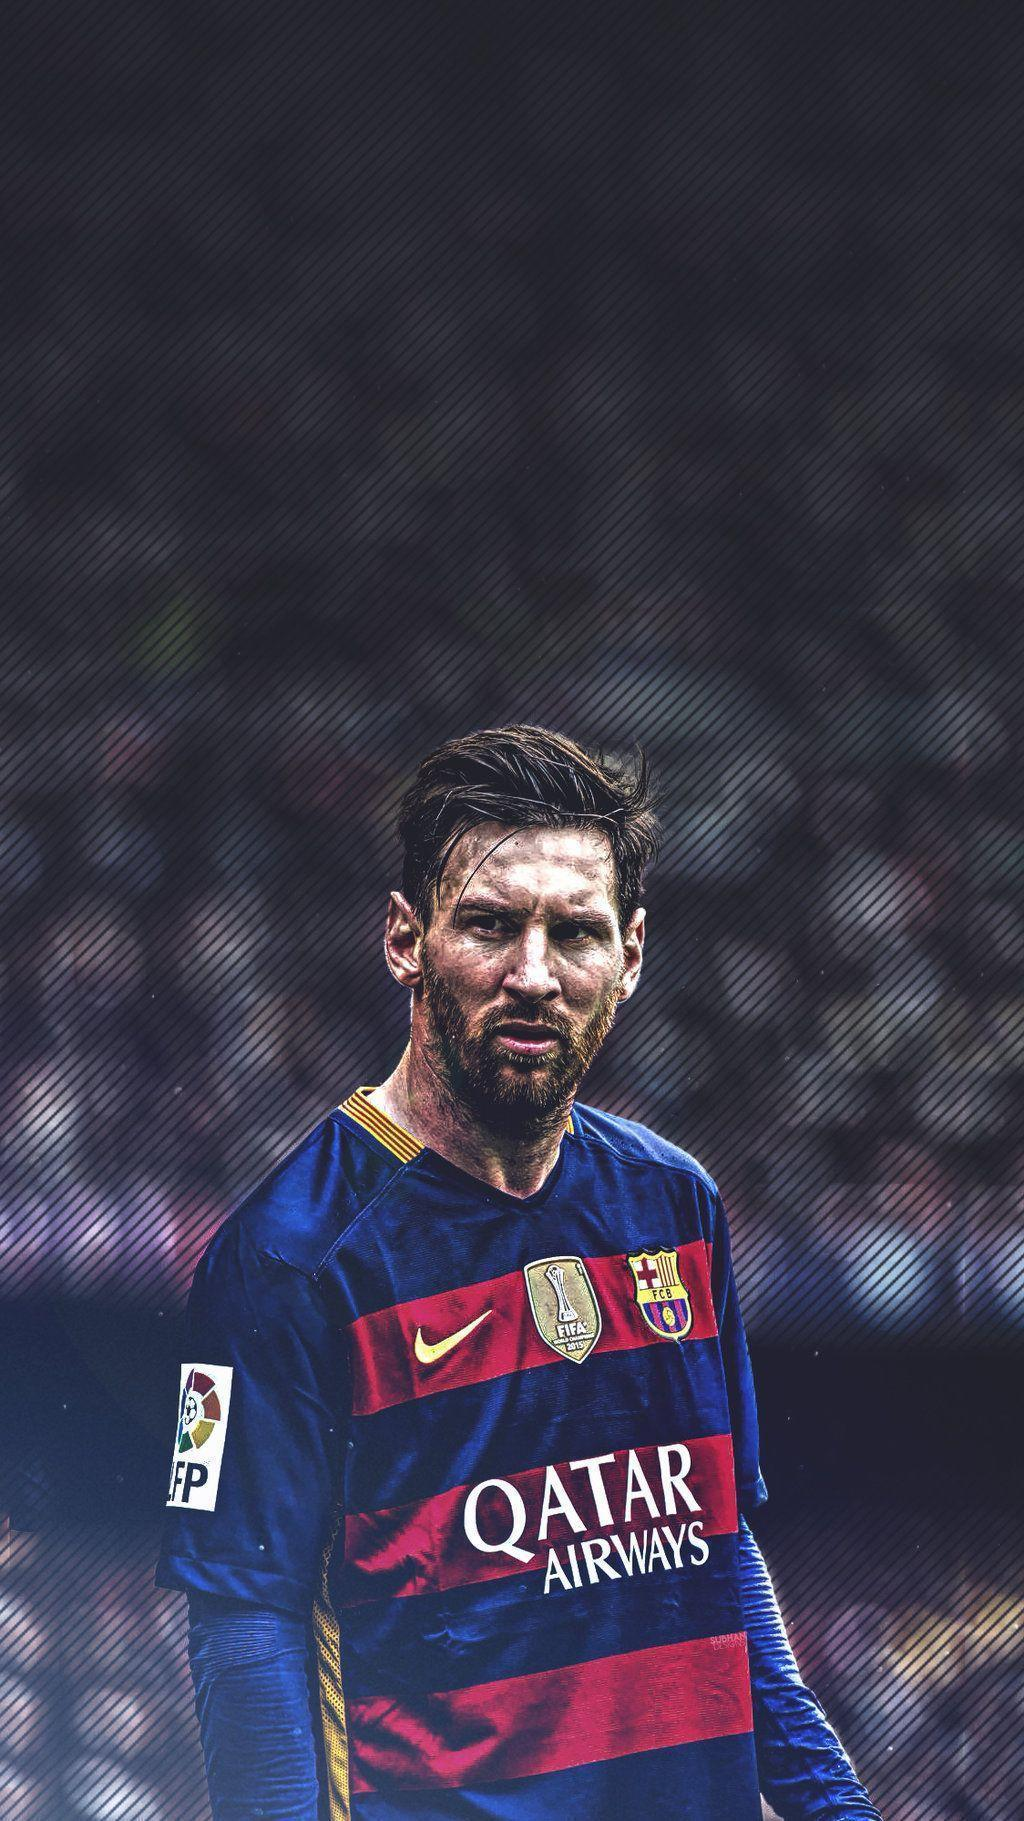 2020 Other | Images: Lionel Messi Wallpaper Hd 2017